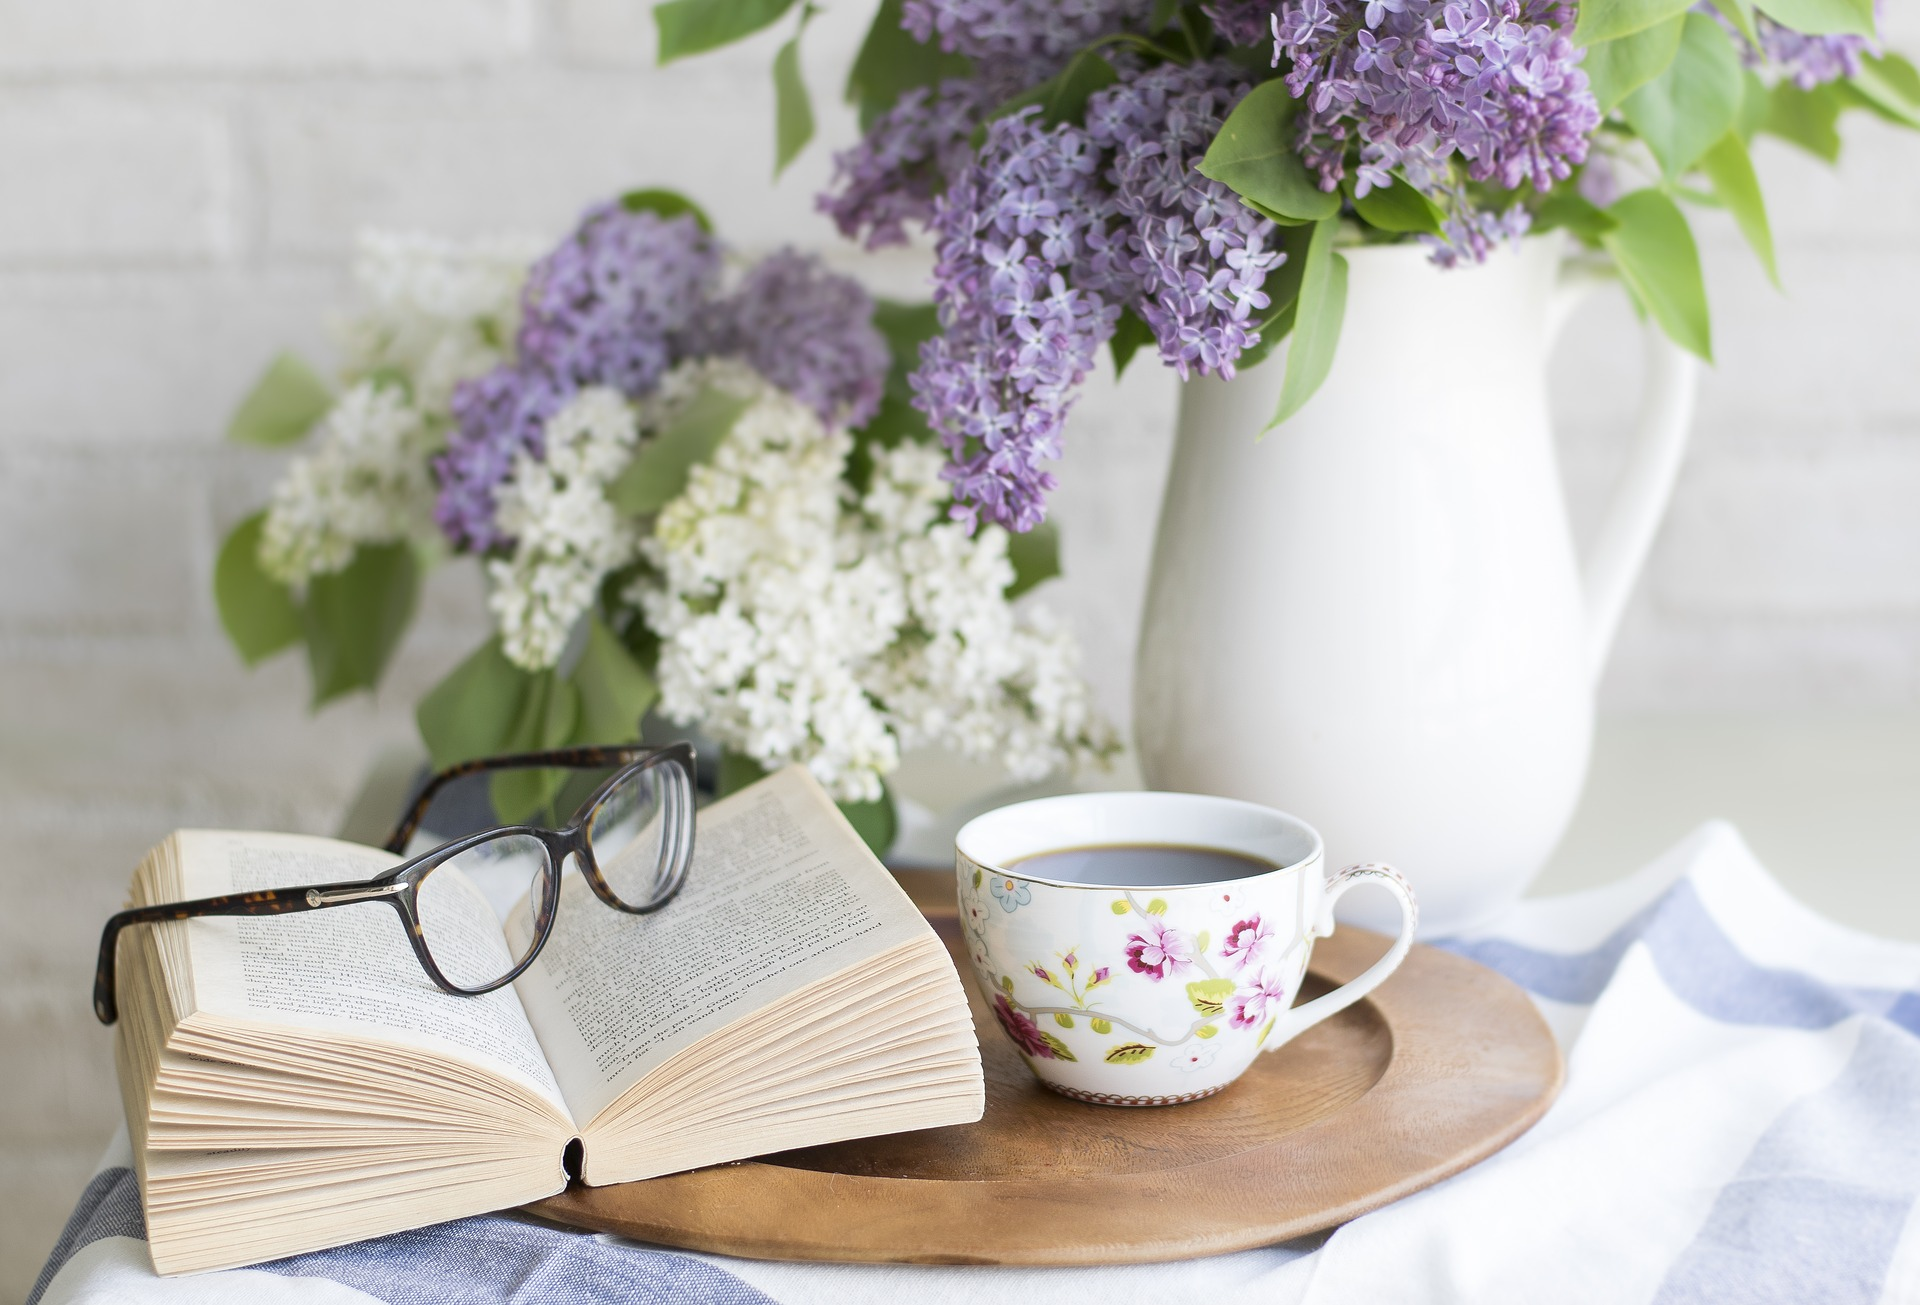 Chrysanthemums, a Cup of Tea, an Open Book and Glasses